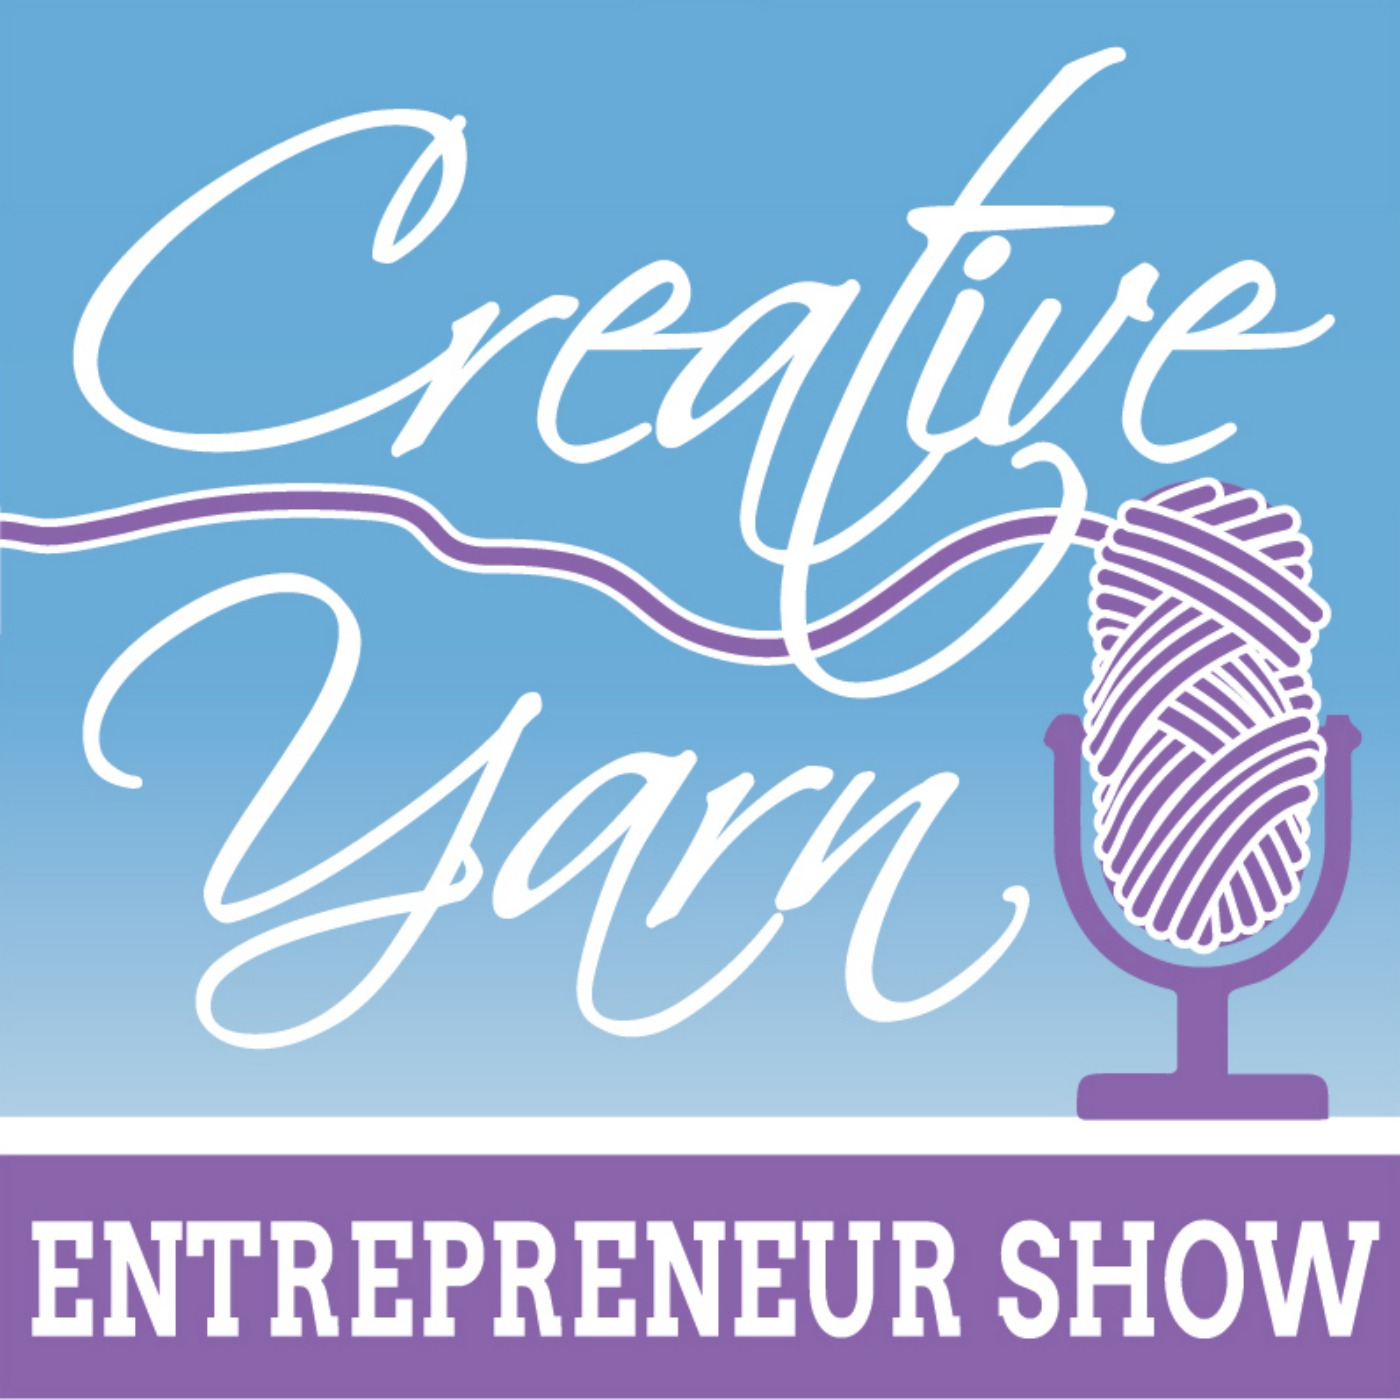 Episode 45: How to Balance Two Creative Businesses - The Creative Yarn Entrepreneur Show